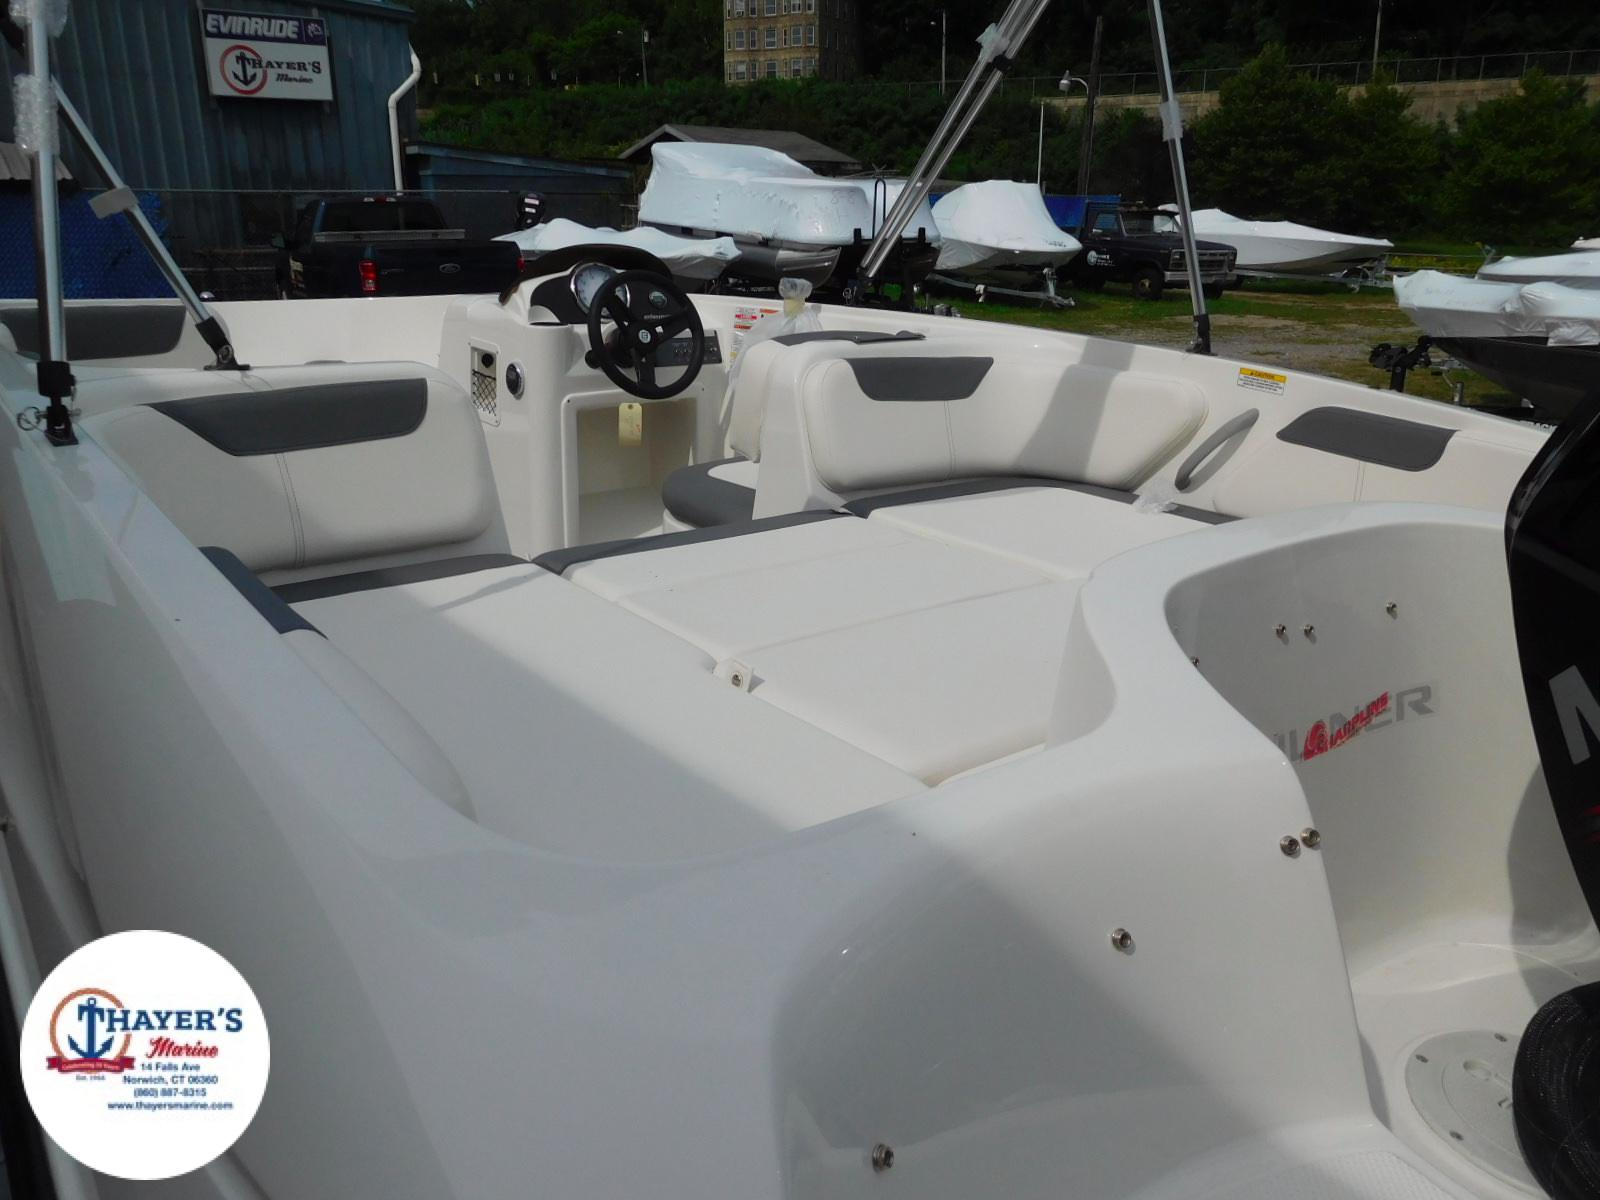 2018 Bayliner boat for sale, model of the boat is Element E18 & Image # 15 of 17